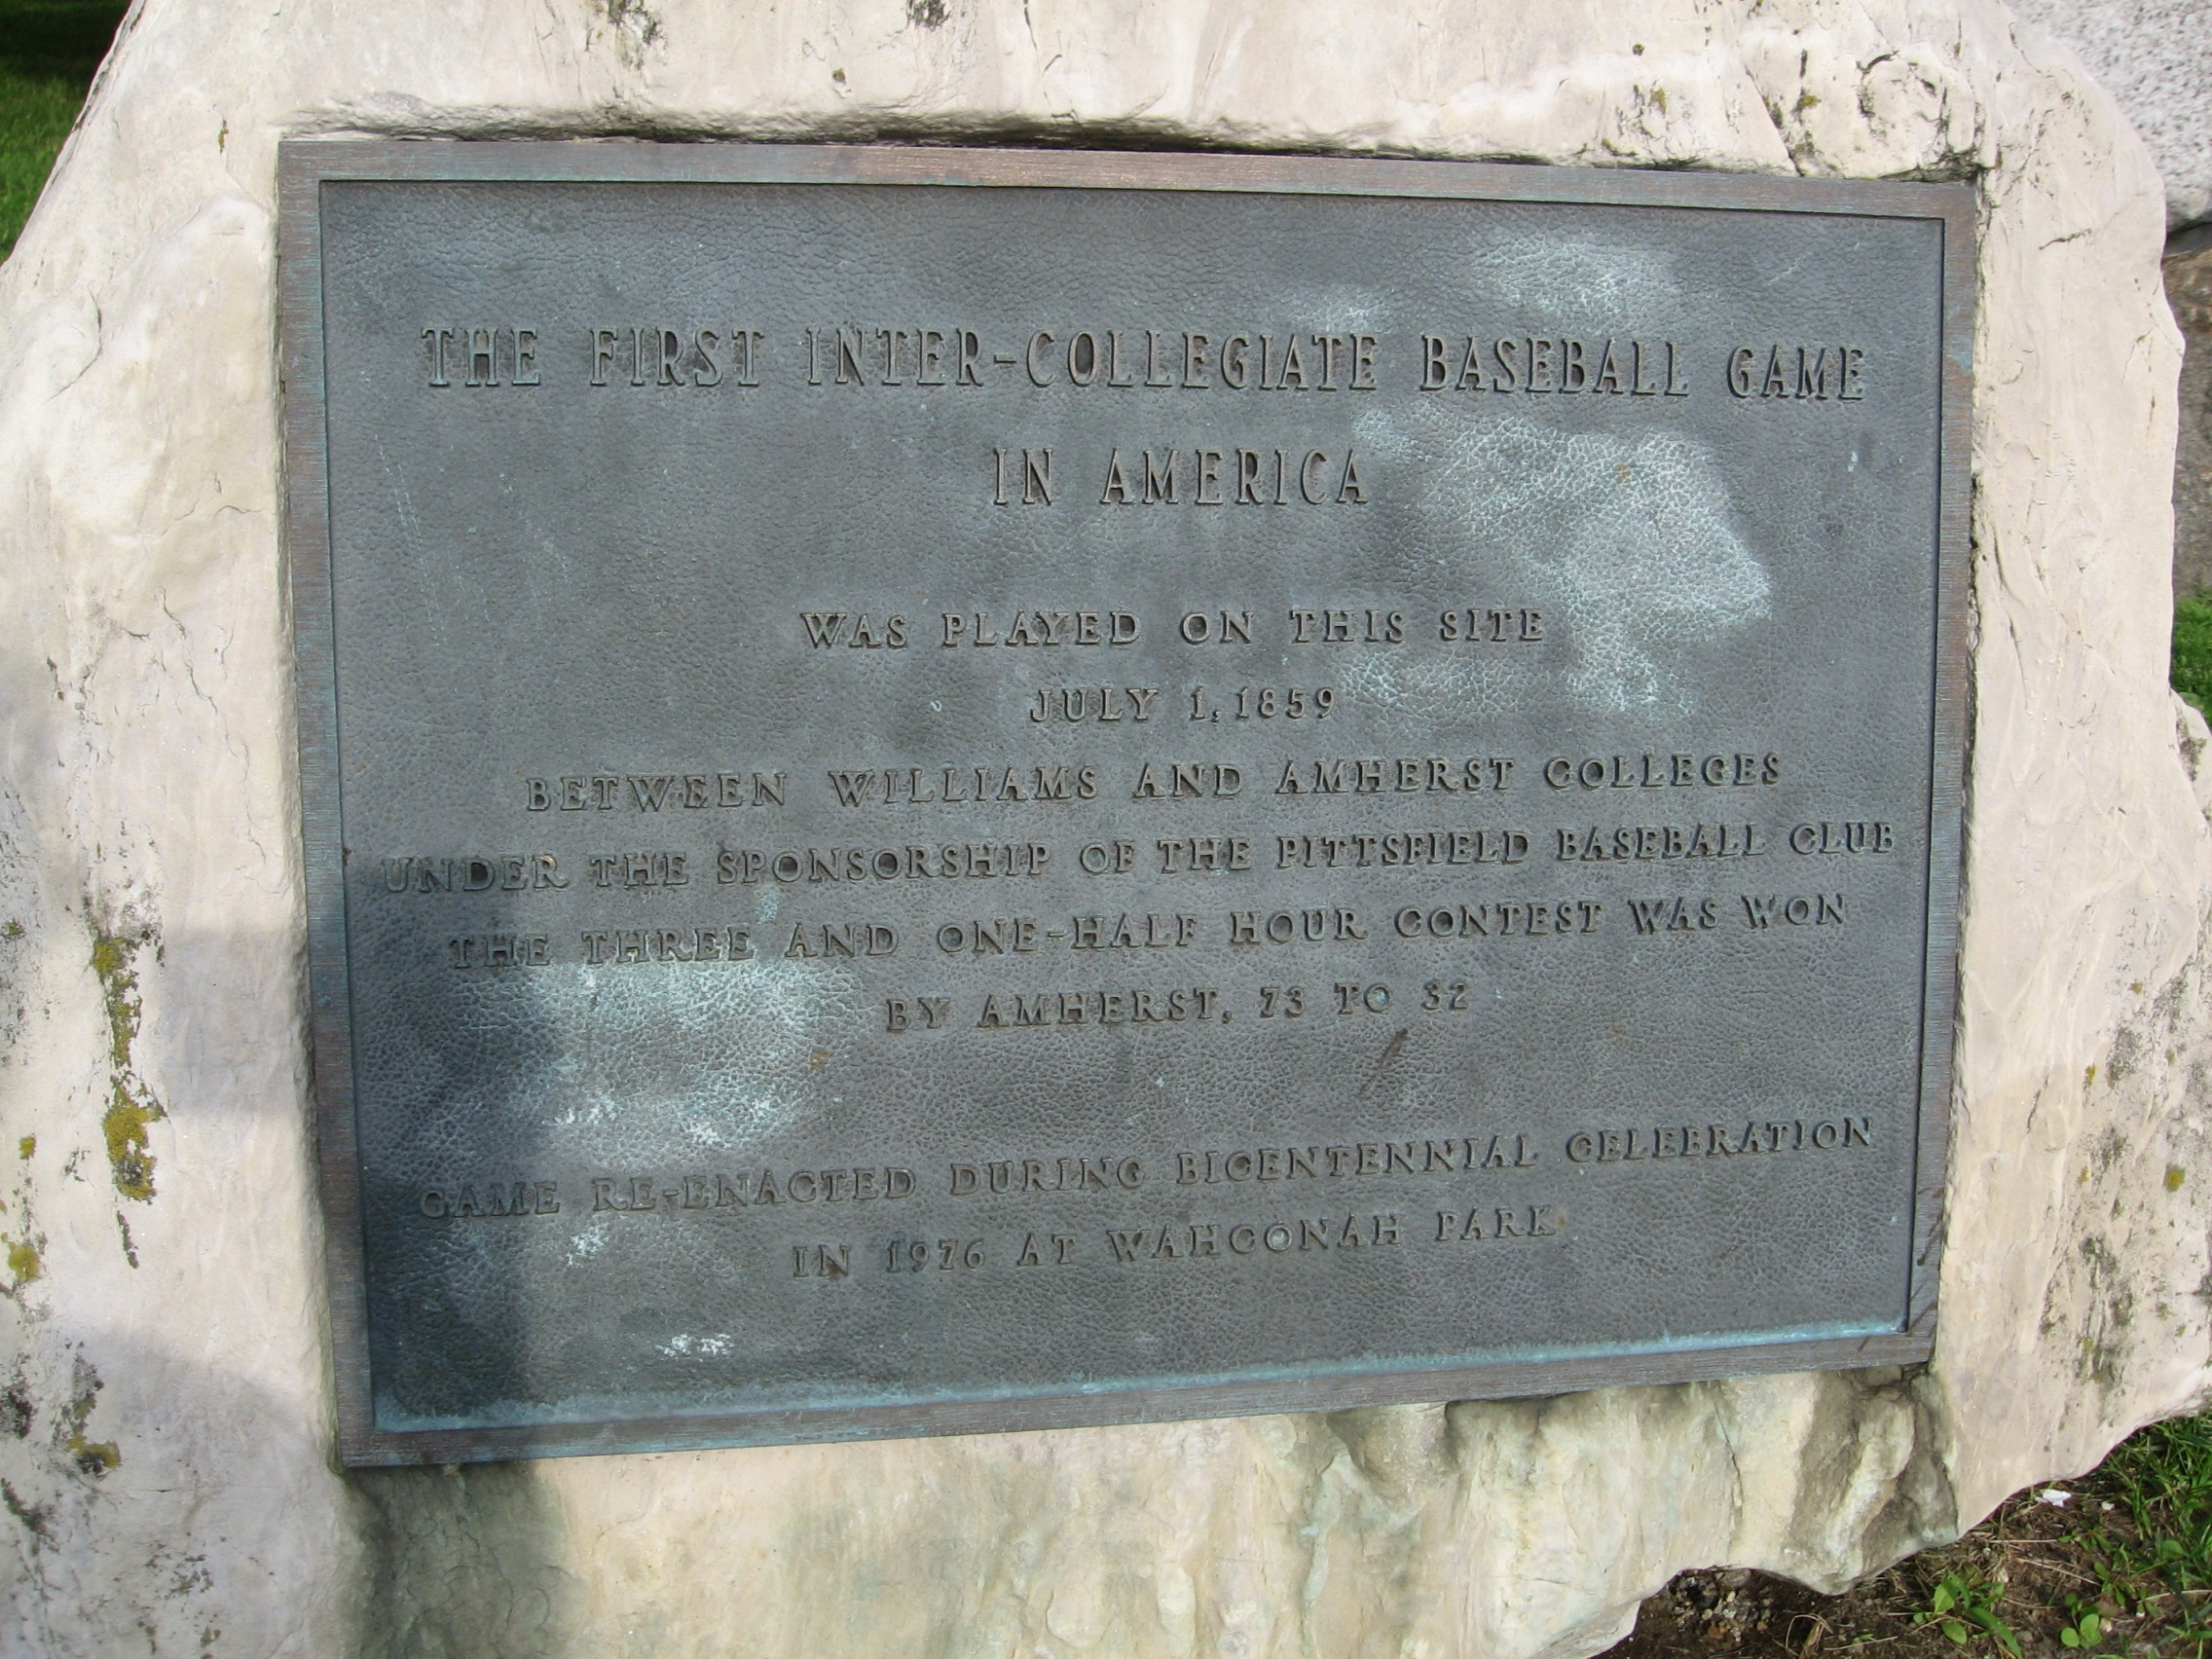 Picture of the plaque denoting the location of the game